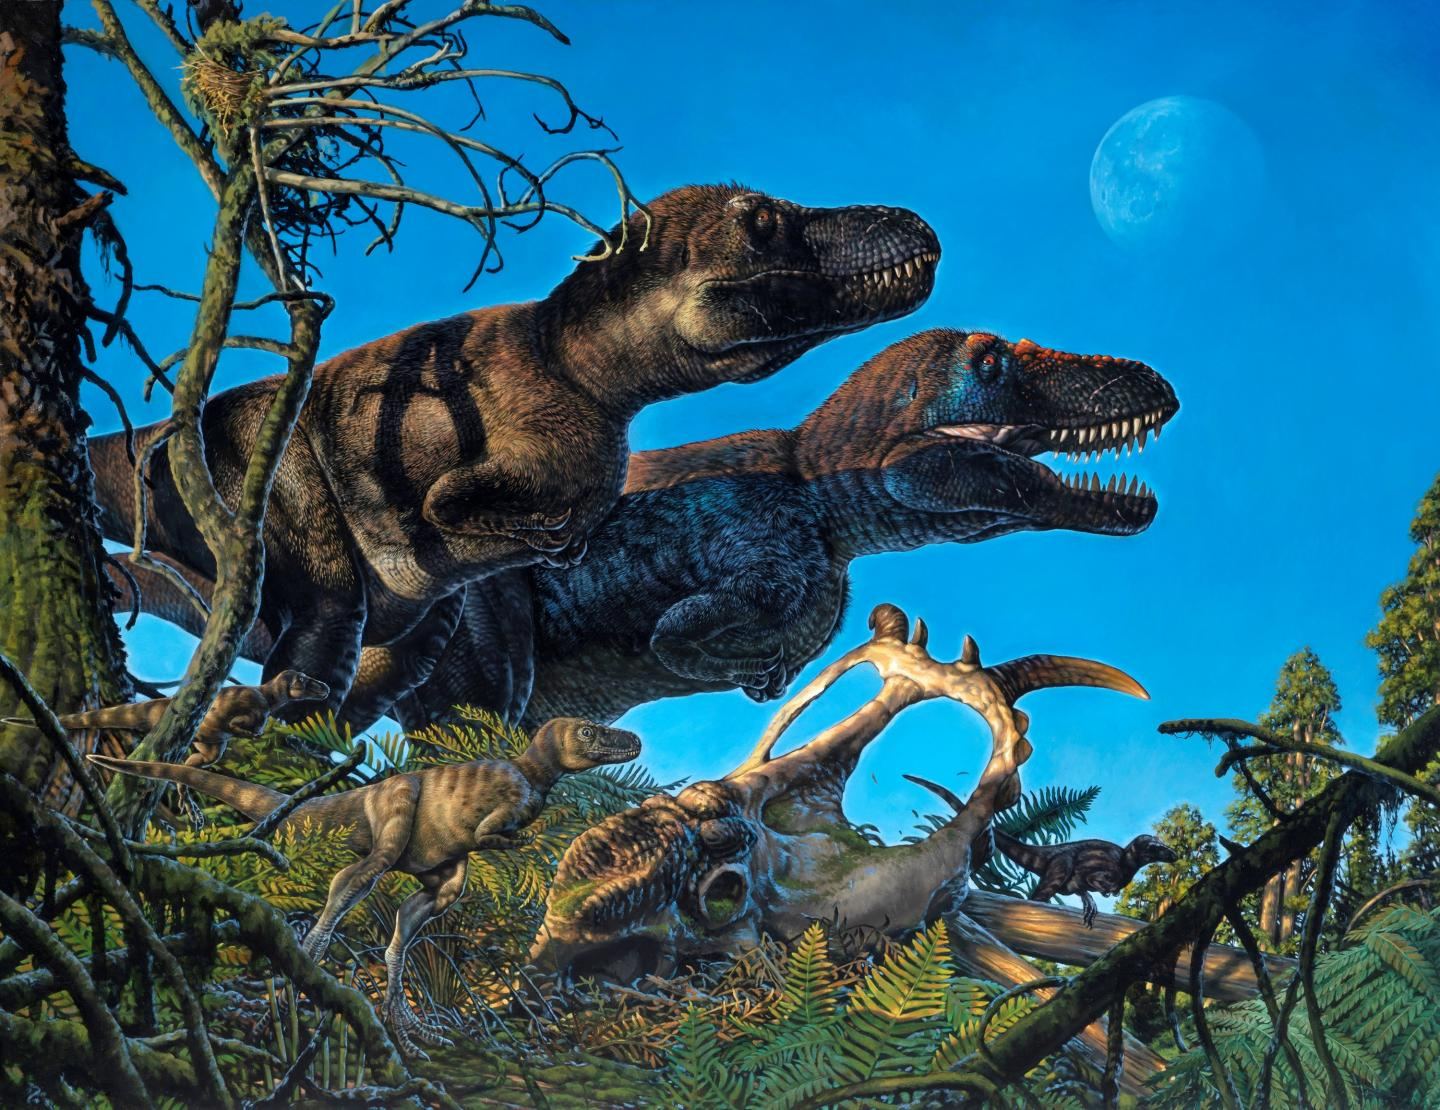 The real Jurassic Park may have been in the Arctic